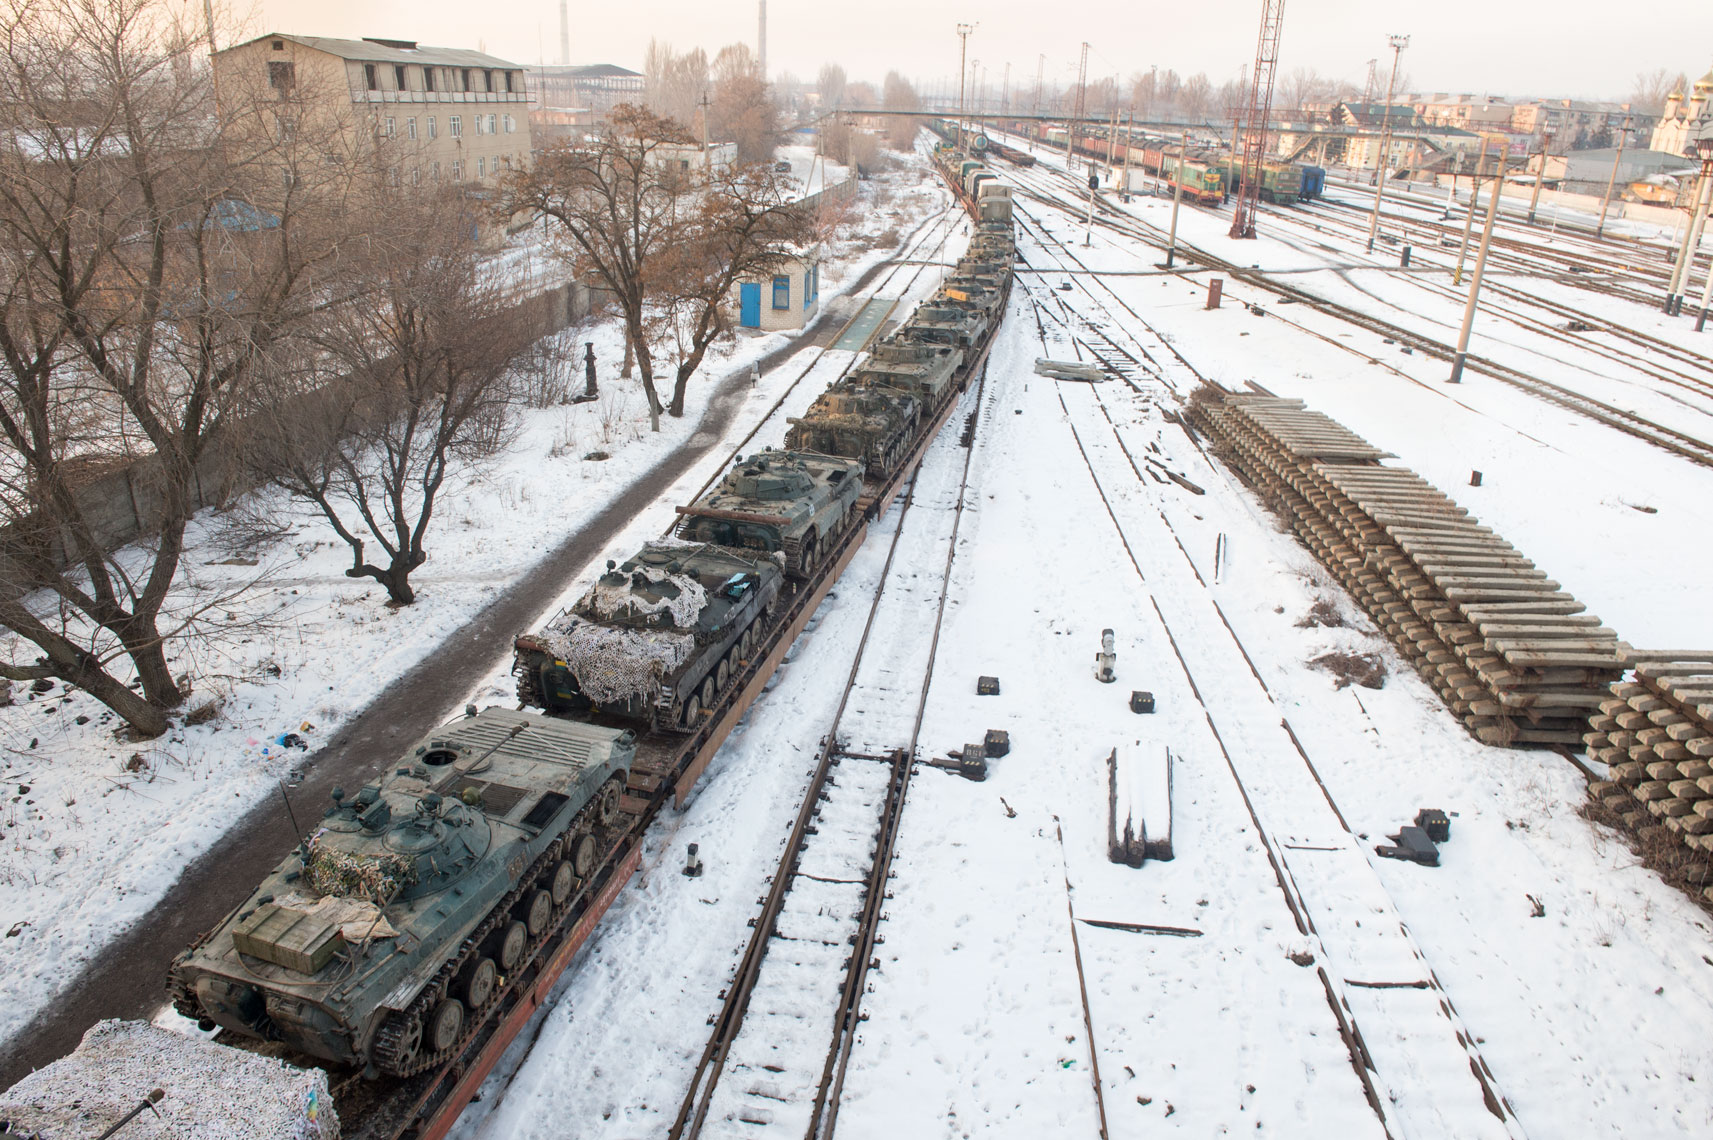 tanks-on-tracks-in-Kostyantynivka